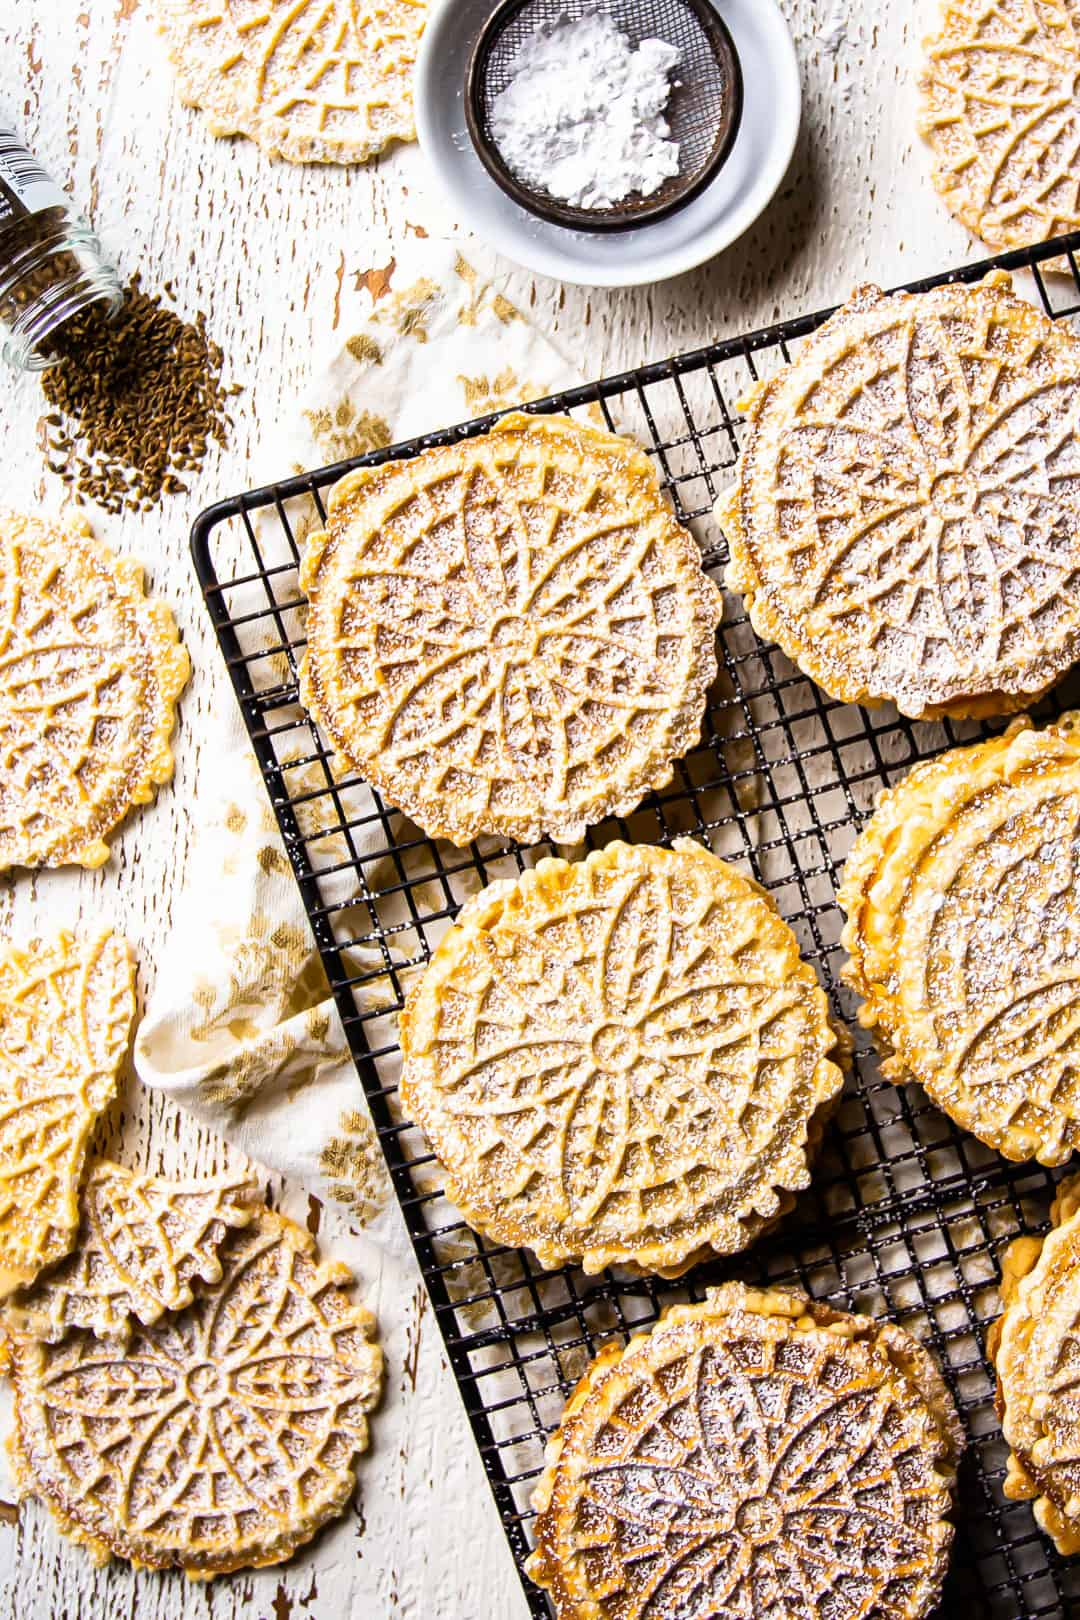 How to make pizzelles crisp.